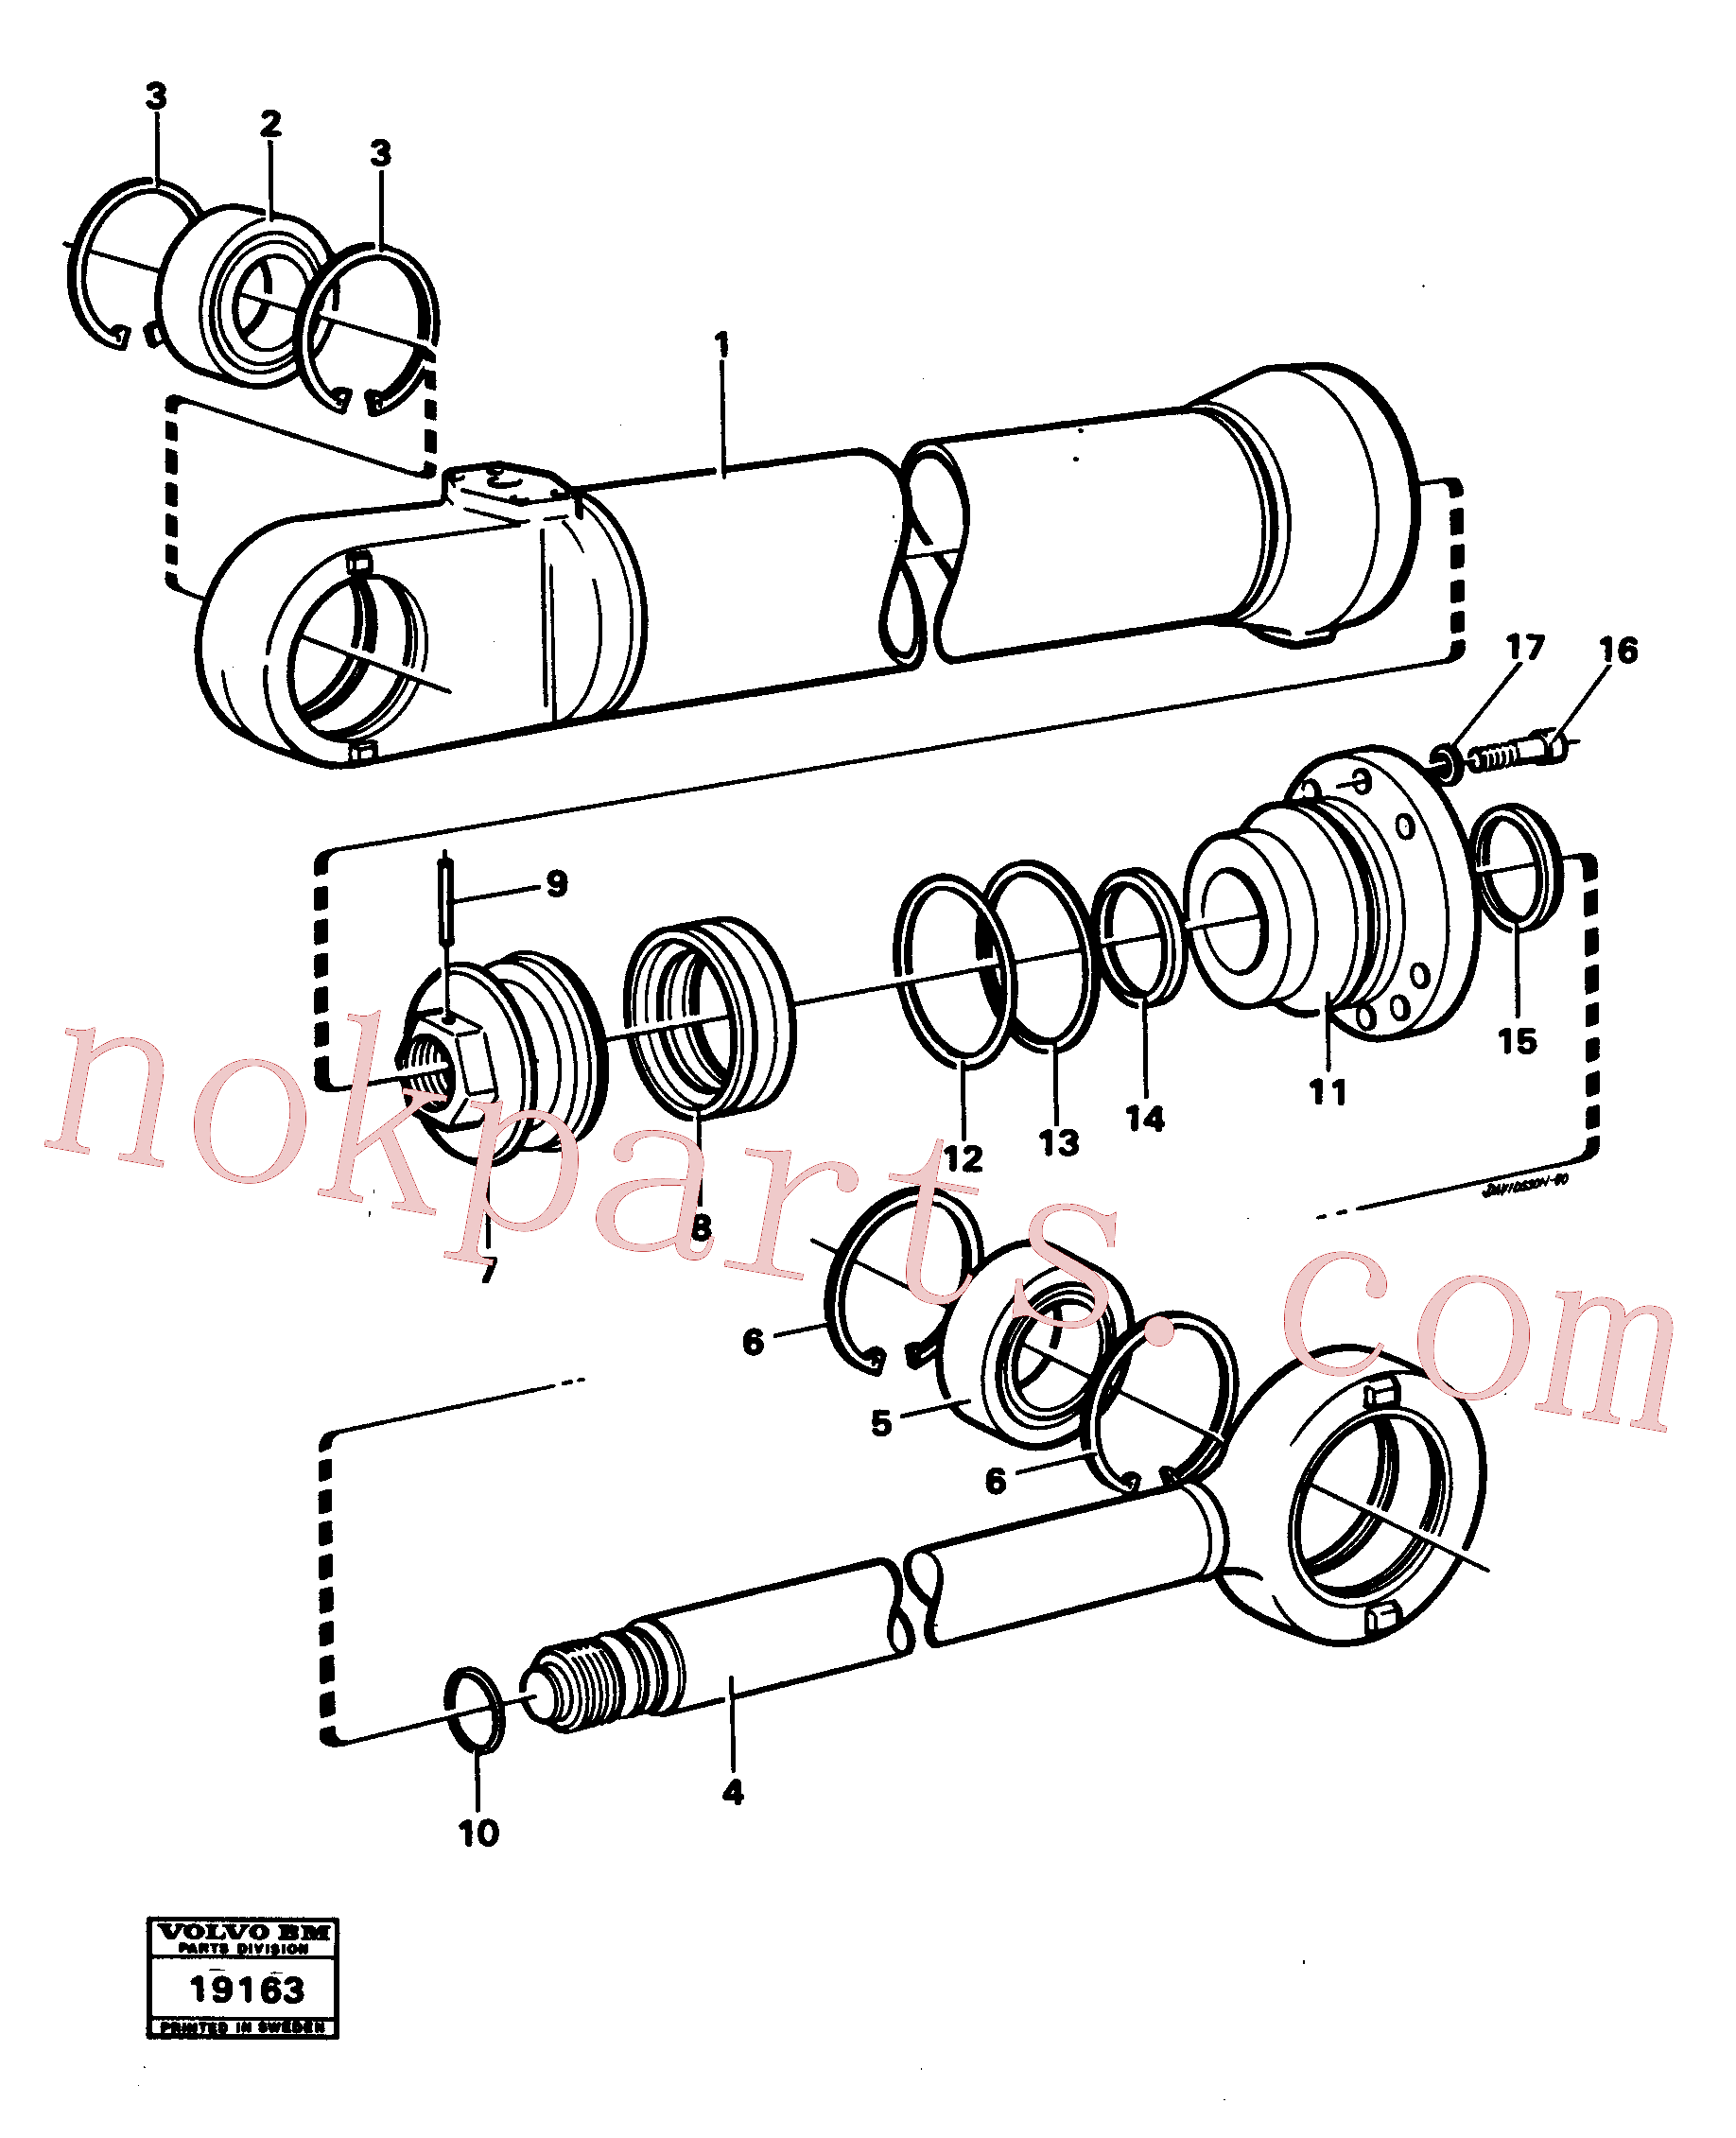 VOE11005195 for Volvo Hydraulic cylinder lifting(19163 assembly)